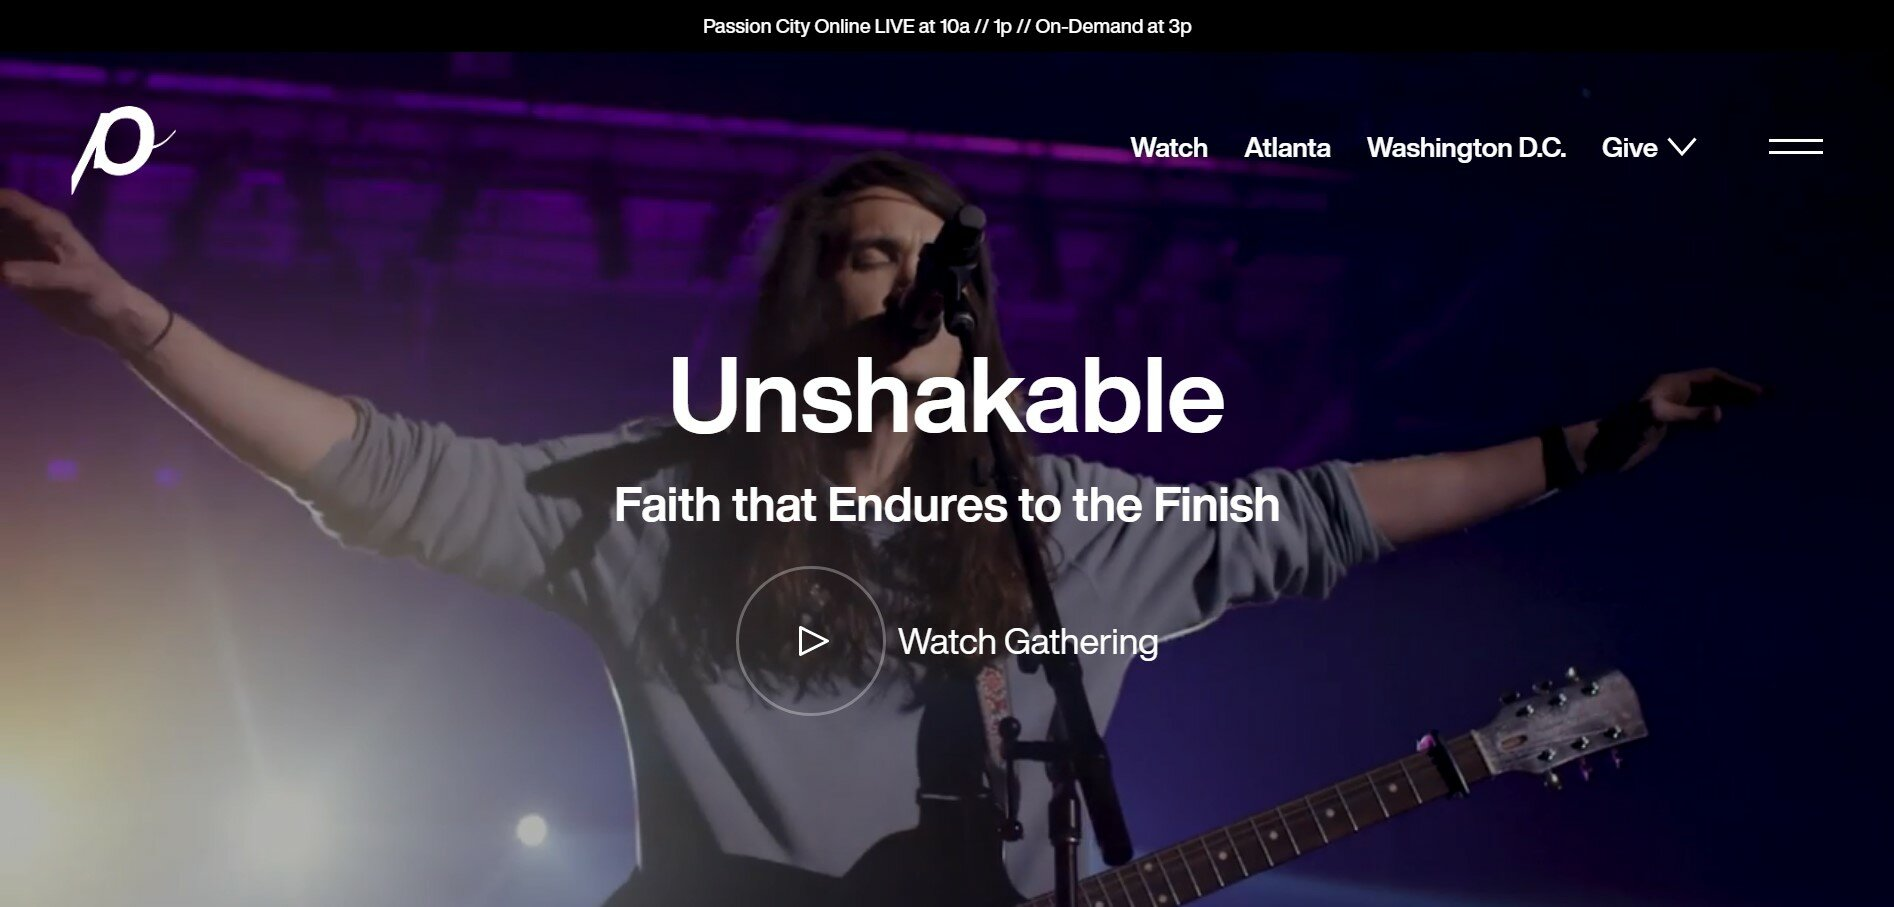 Passion City Church has one of our favorite church websites.